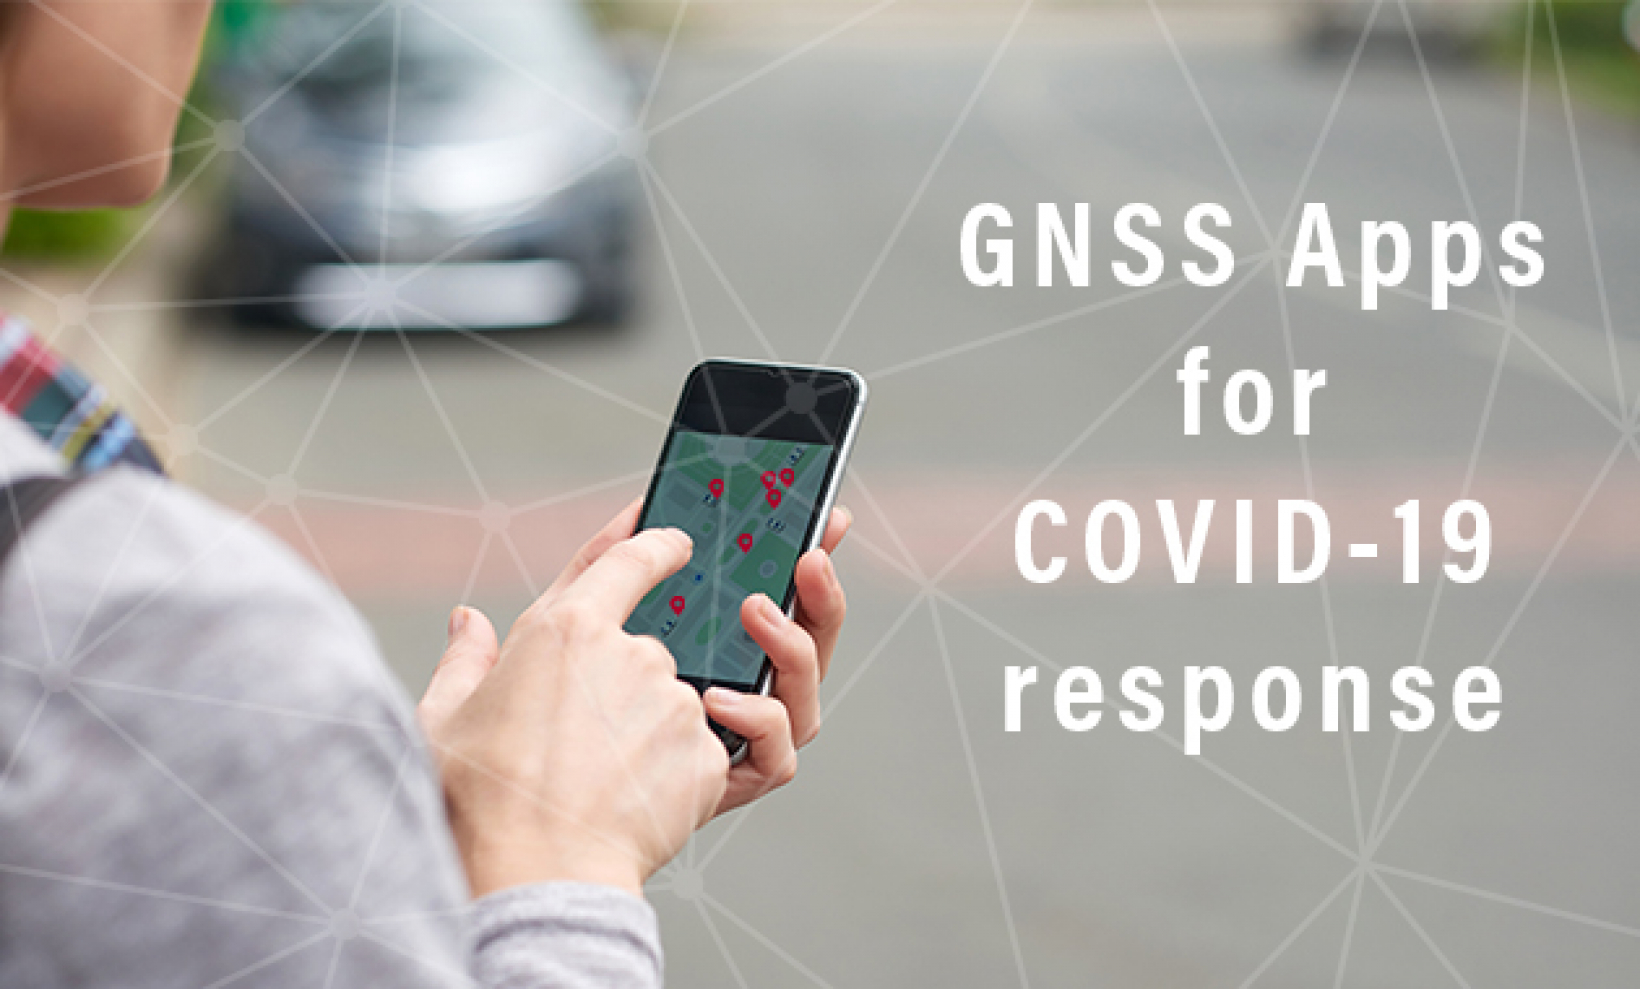 Apps leveraging GNSS positioning can be used to effectively monitor and map the spread of the virus.